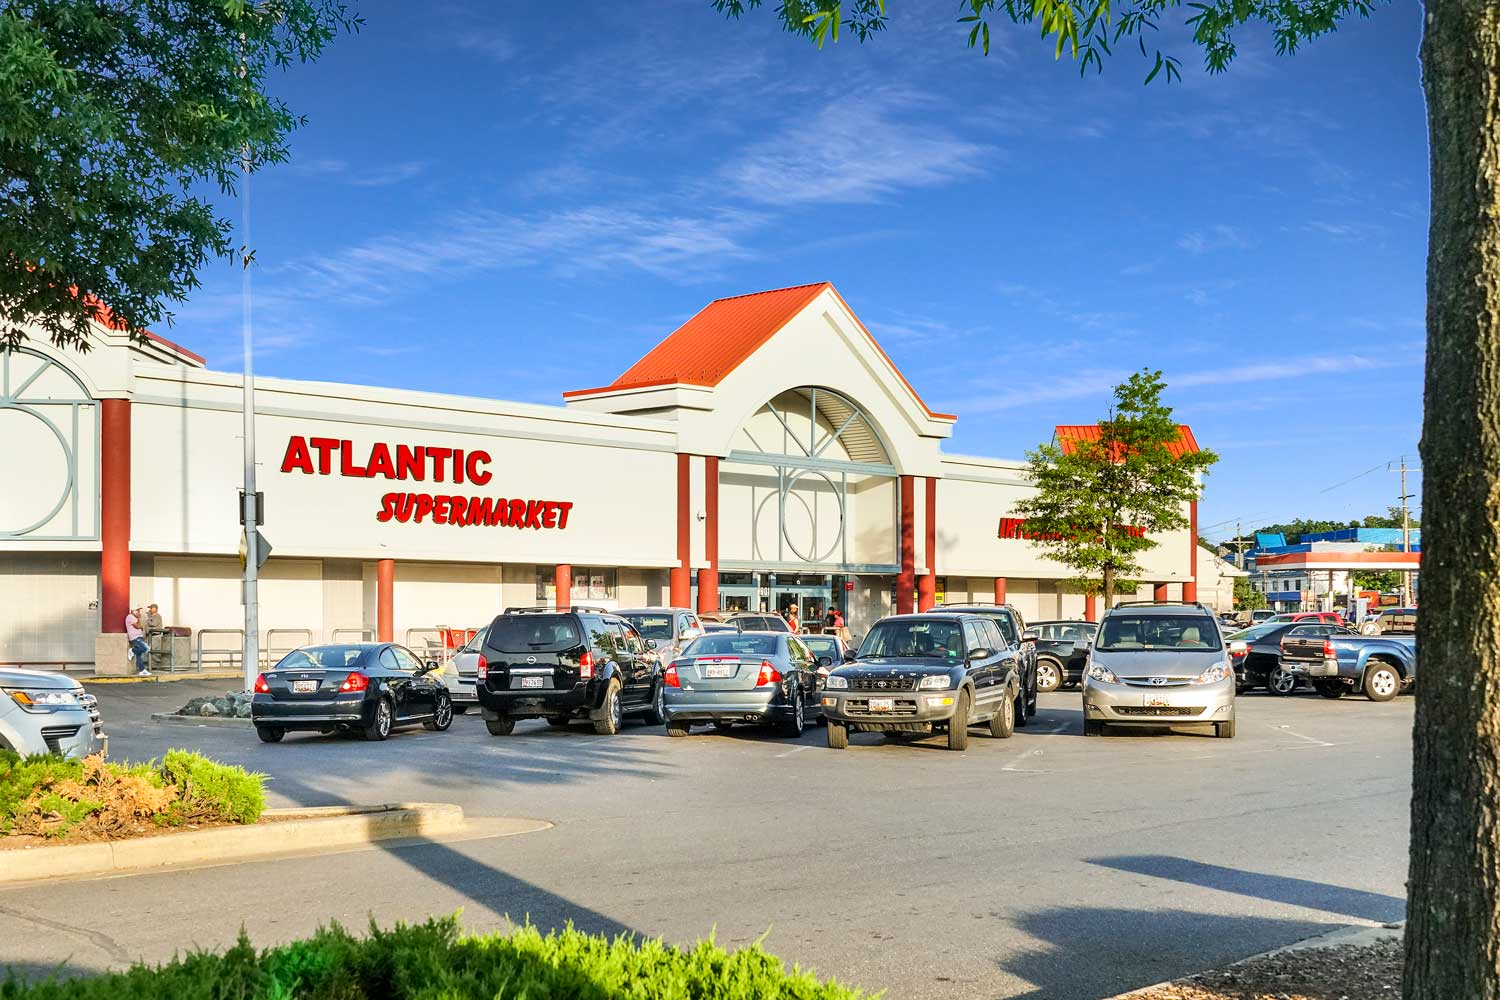 Langley Park Plaza is 5 minutes from Kirkwood Apartments in Hyattsville, MD